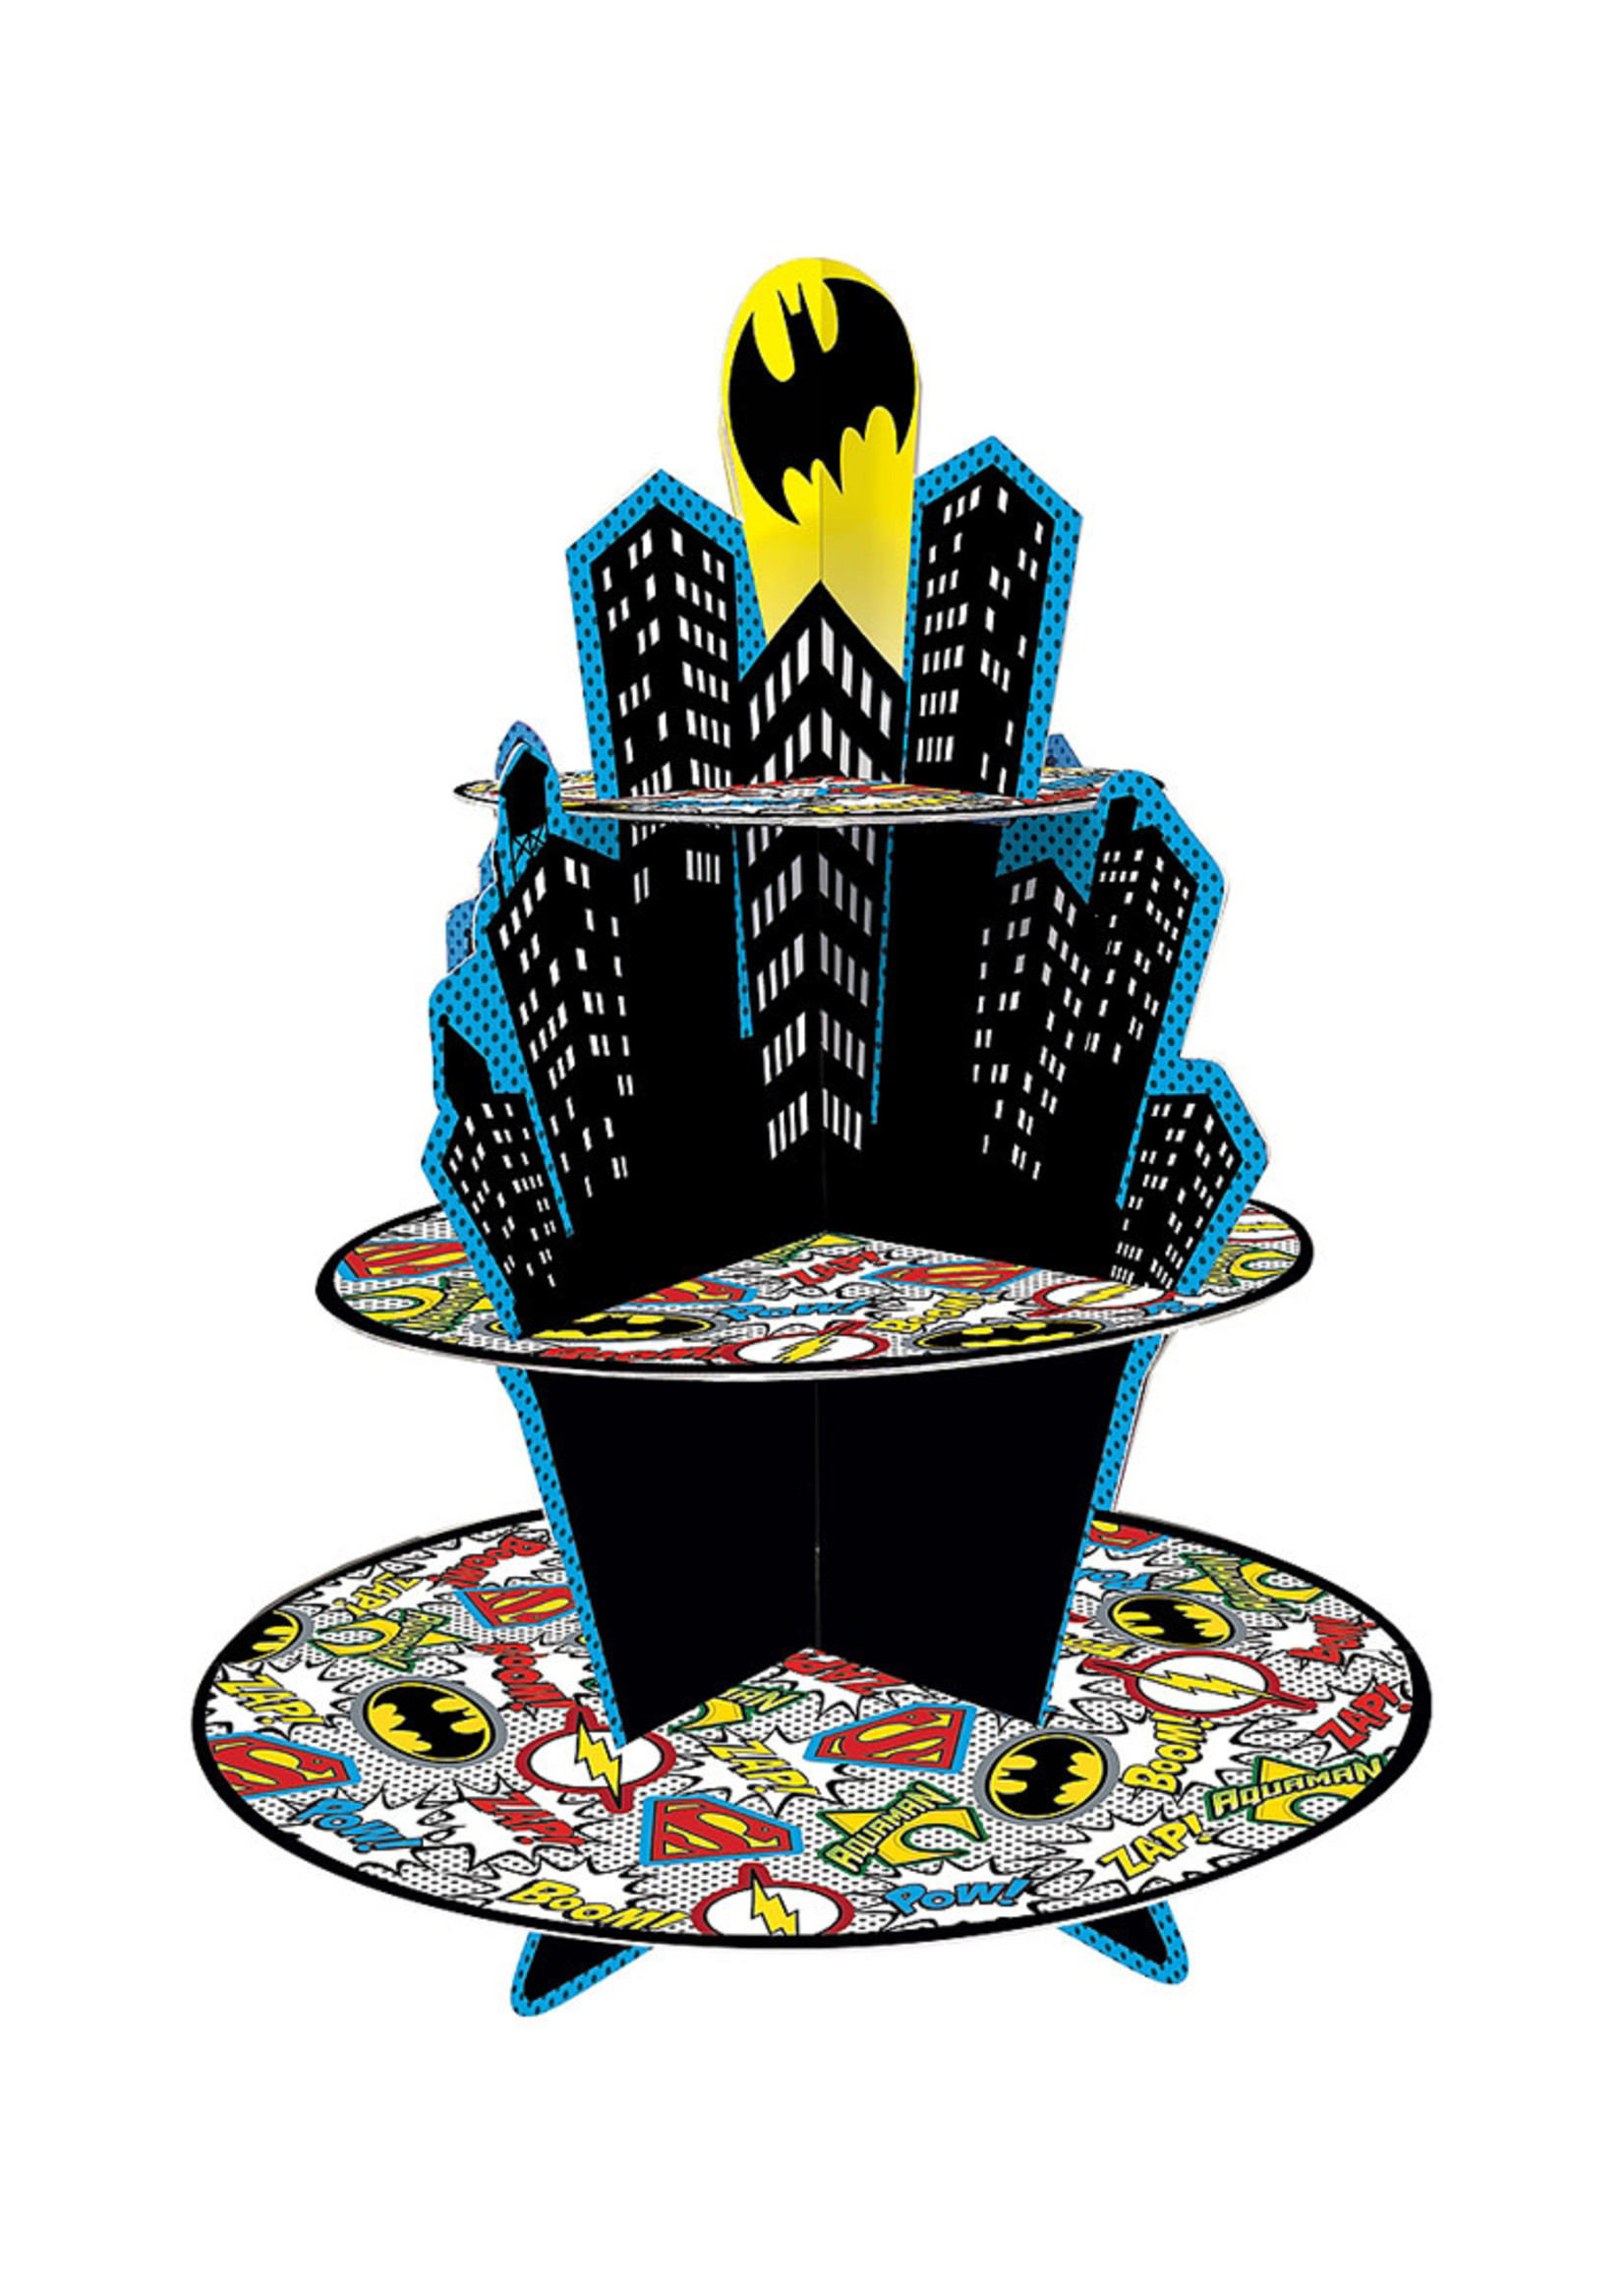 Justice League Heroes Unite Cupcake Stand